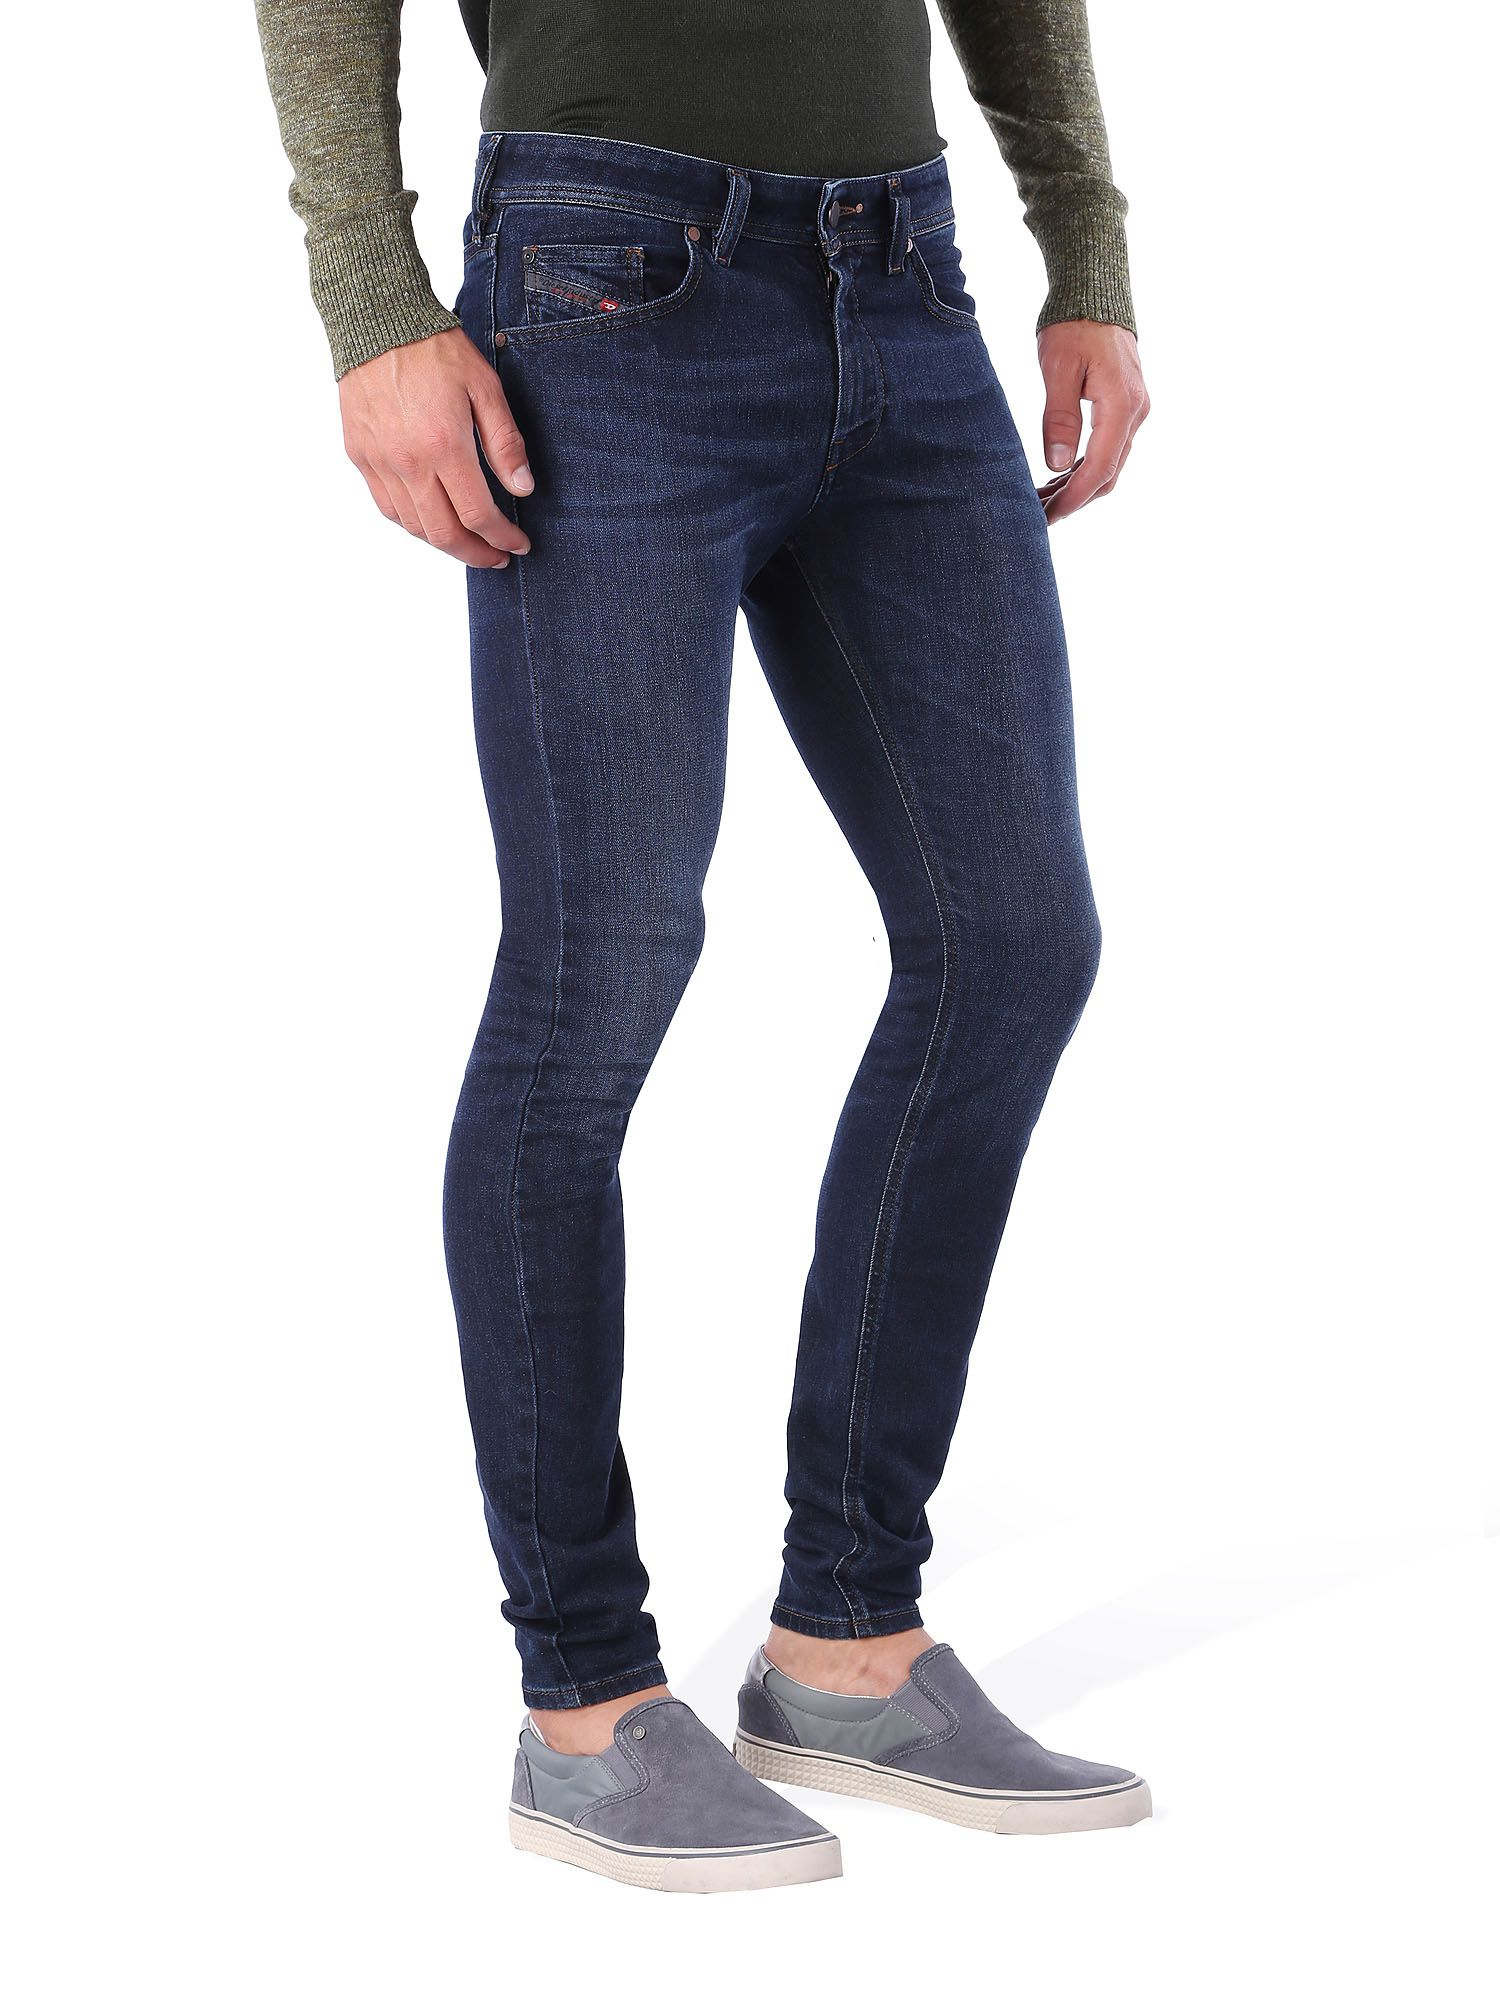 Shop mens jeans cheap sale online, you can buy black jeans, skinny jeans, slim fit jeans and ripped jeans for men at wholesale prices on s2w6s5q3to.gq FREE Shipping available worldwide.